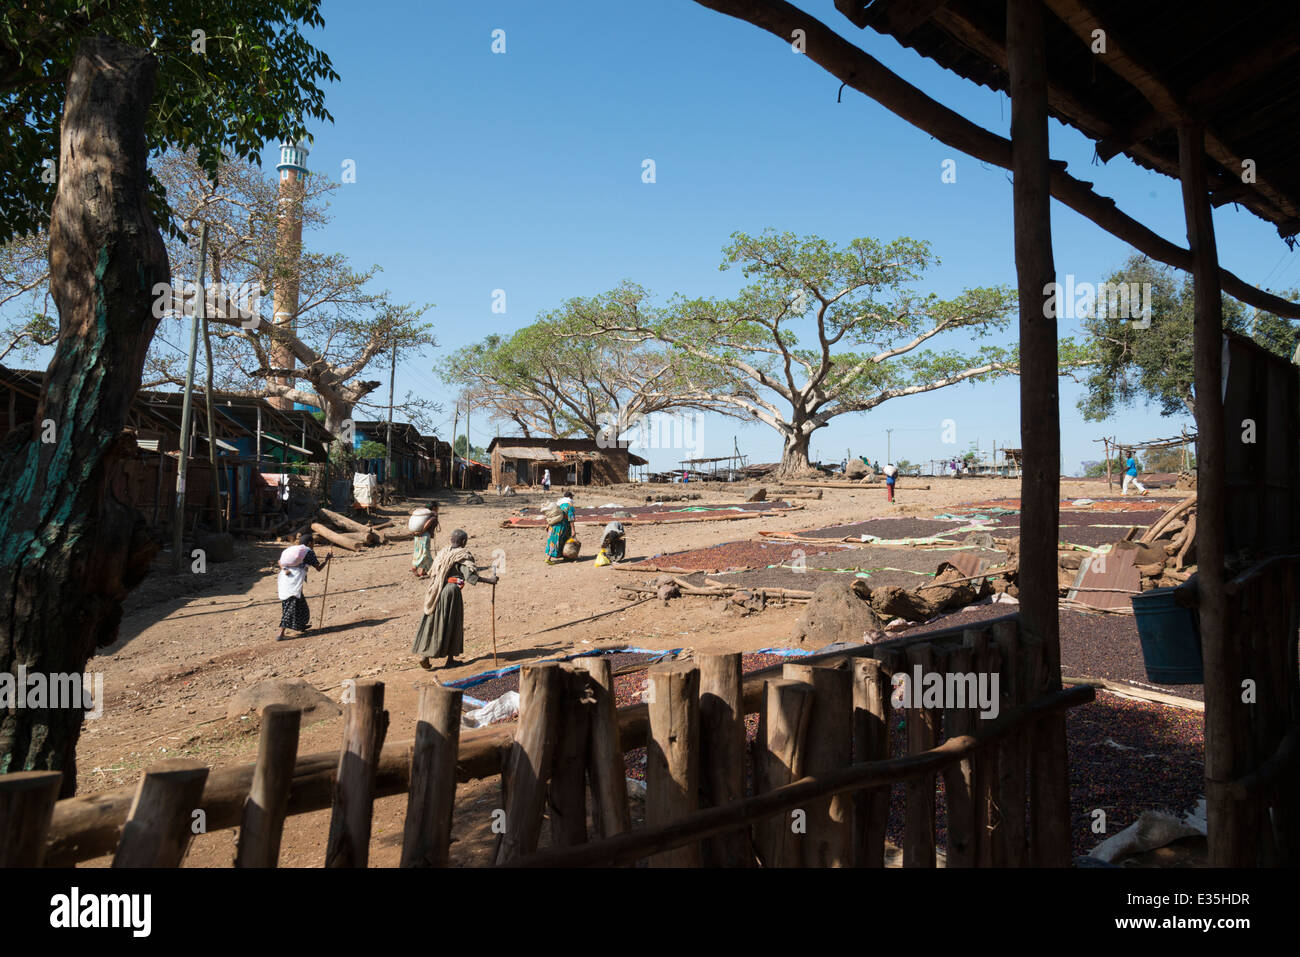 Market square. Afaf. Zege peninsula. Lake Tana. Northern Ethiopia. - Stock Image